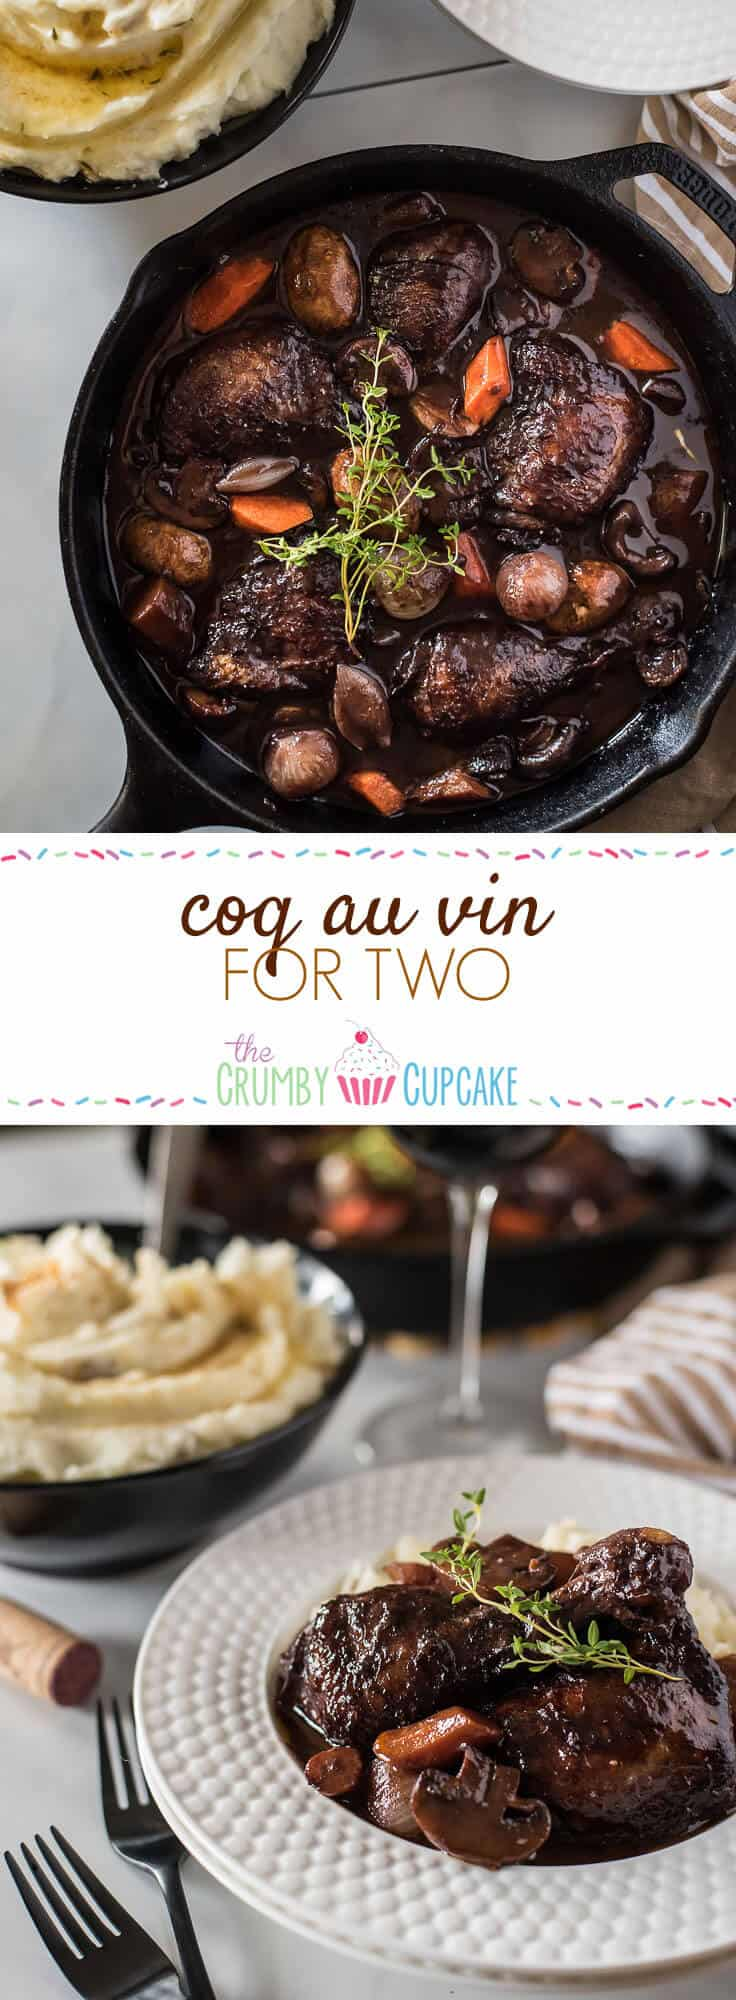 No fear - this classic Coq Au Vin recipe is not nearly as difficult as you might think! Wine-marinated chicken, onions, mushrooms, and carrots are slow simmered in a deliciously rich French red wine sauce, and will be the highlight of your week at the dinner table!